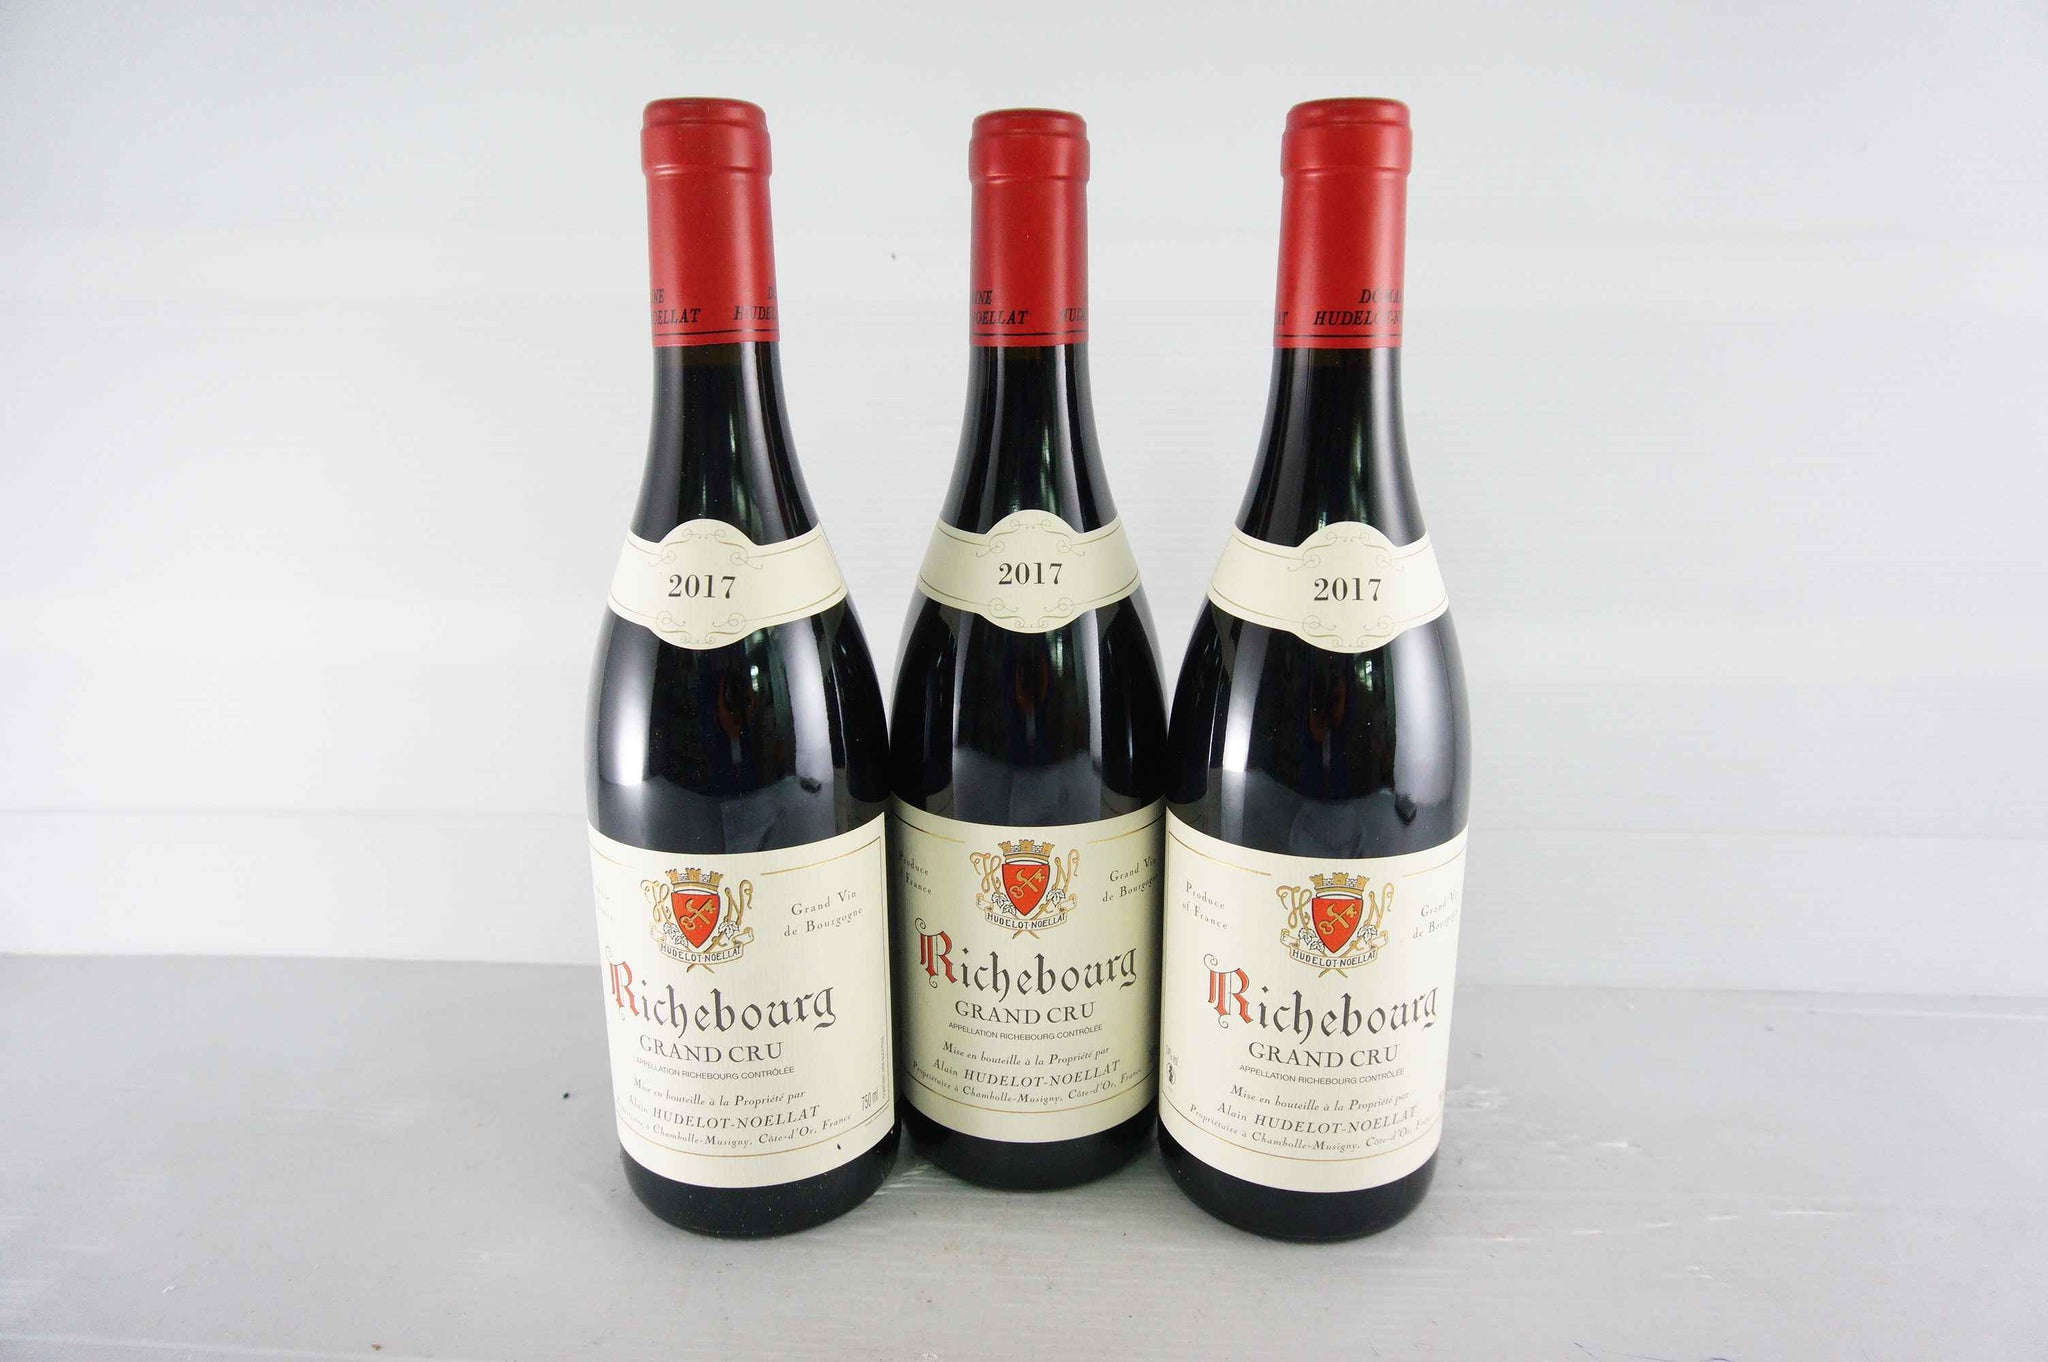 Hudelot Noellat Richebourg Grand Cru 2017